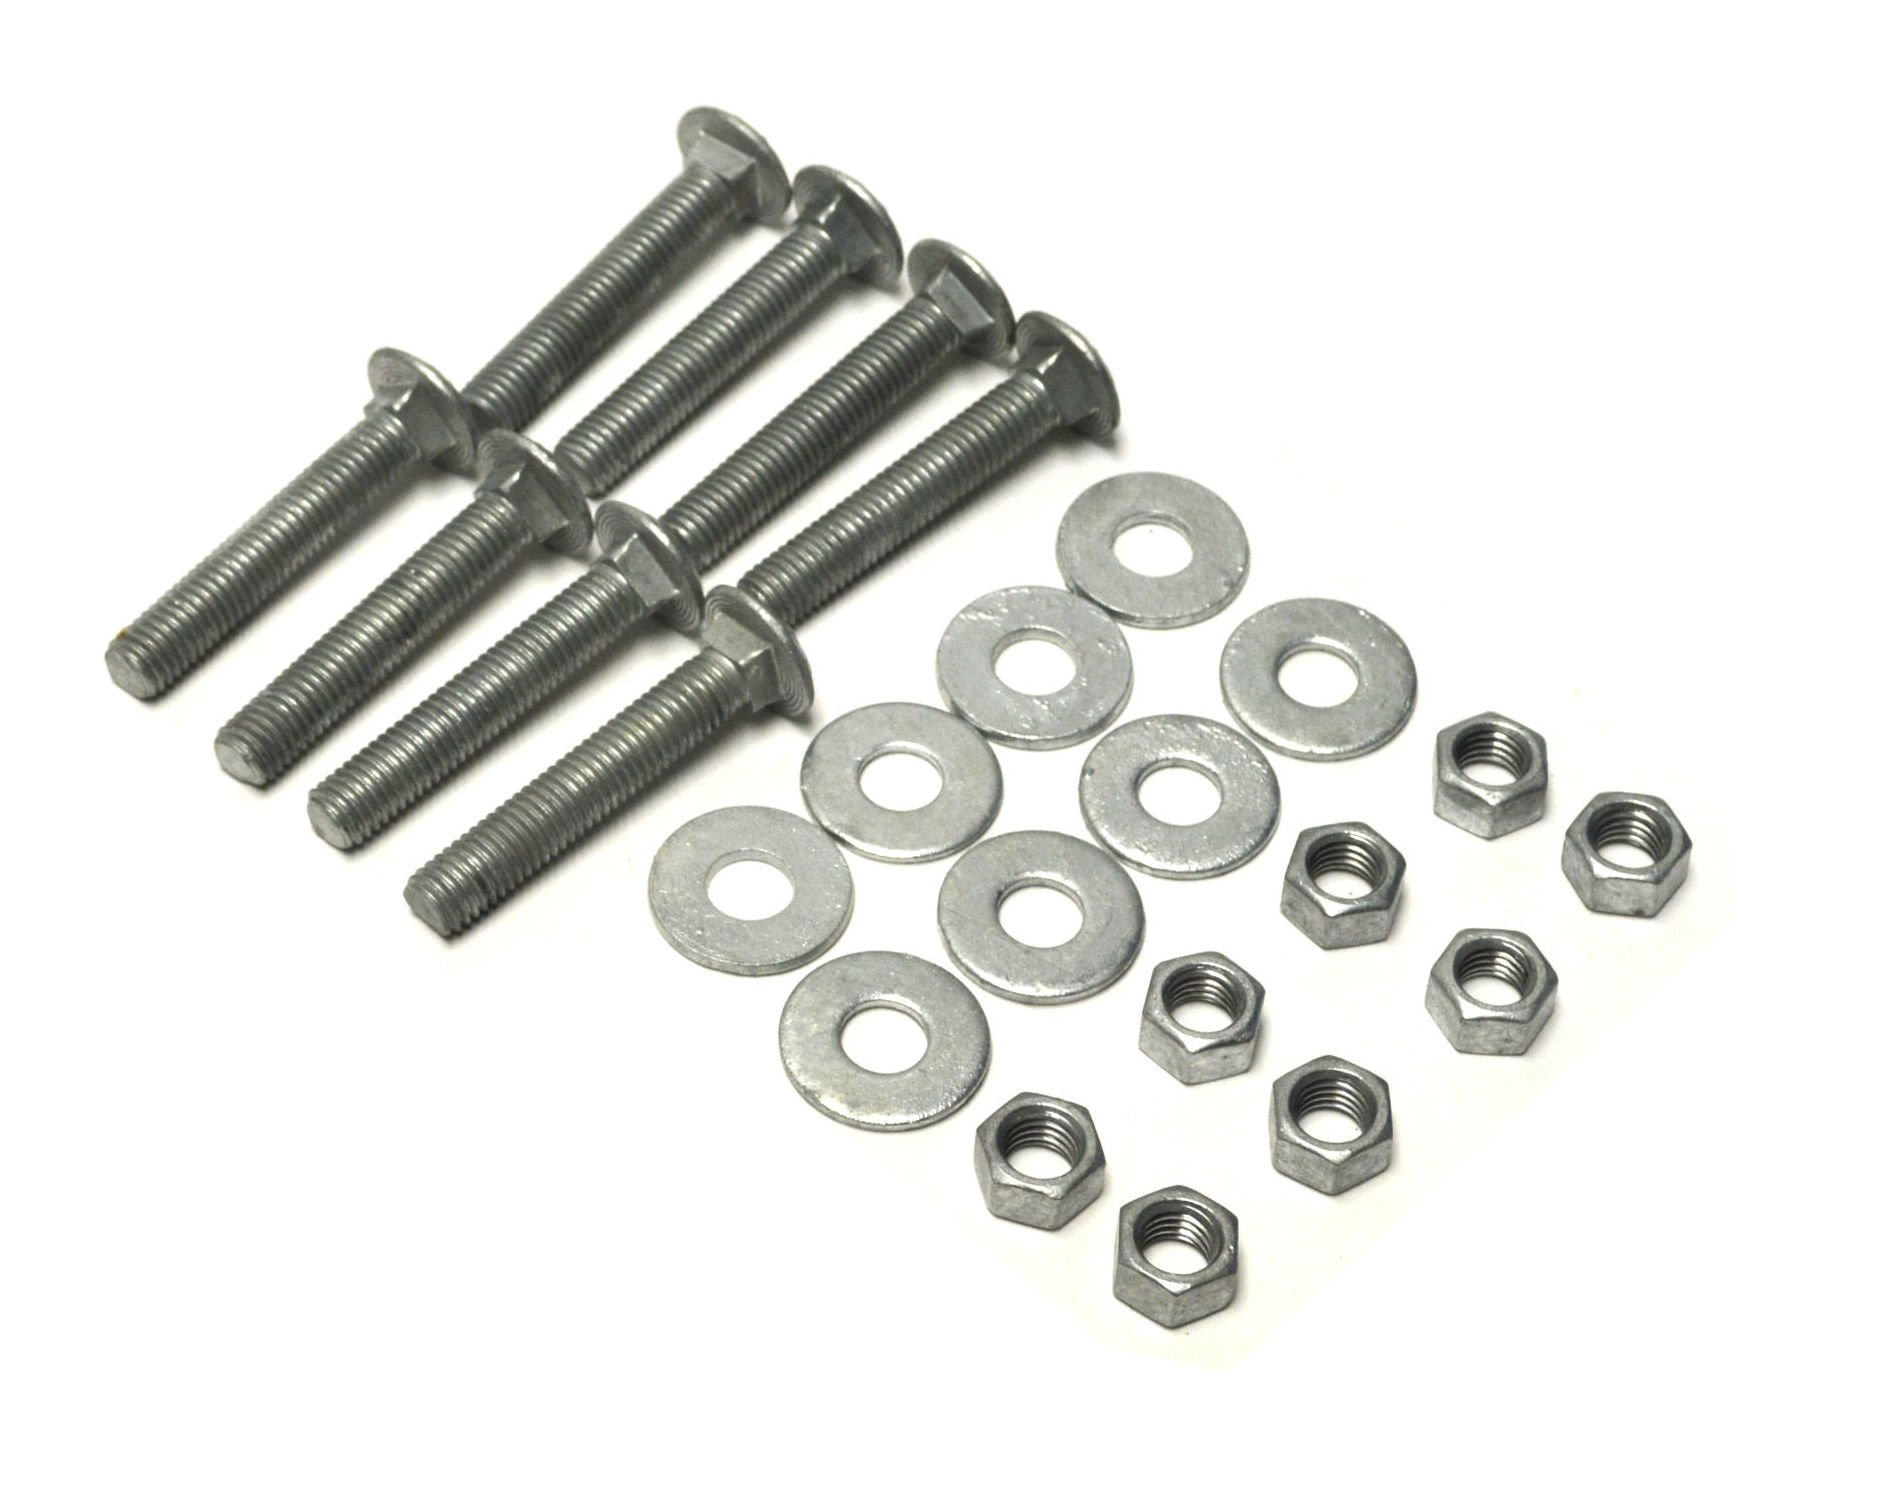 Dock Hardware 1/2'' x 3'' Galvanized Carriage Bolt Set (Pack of 8)